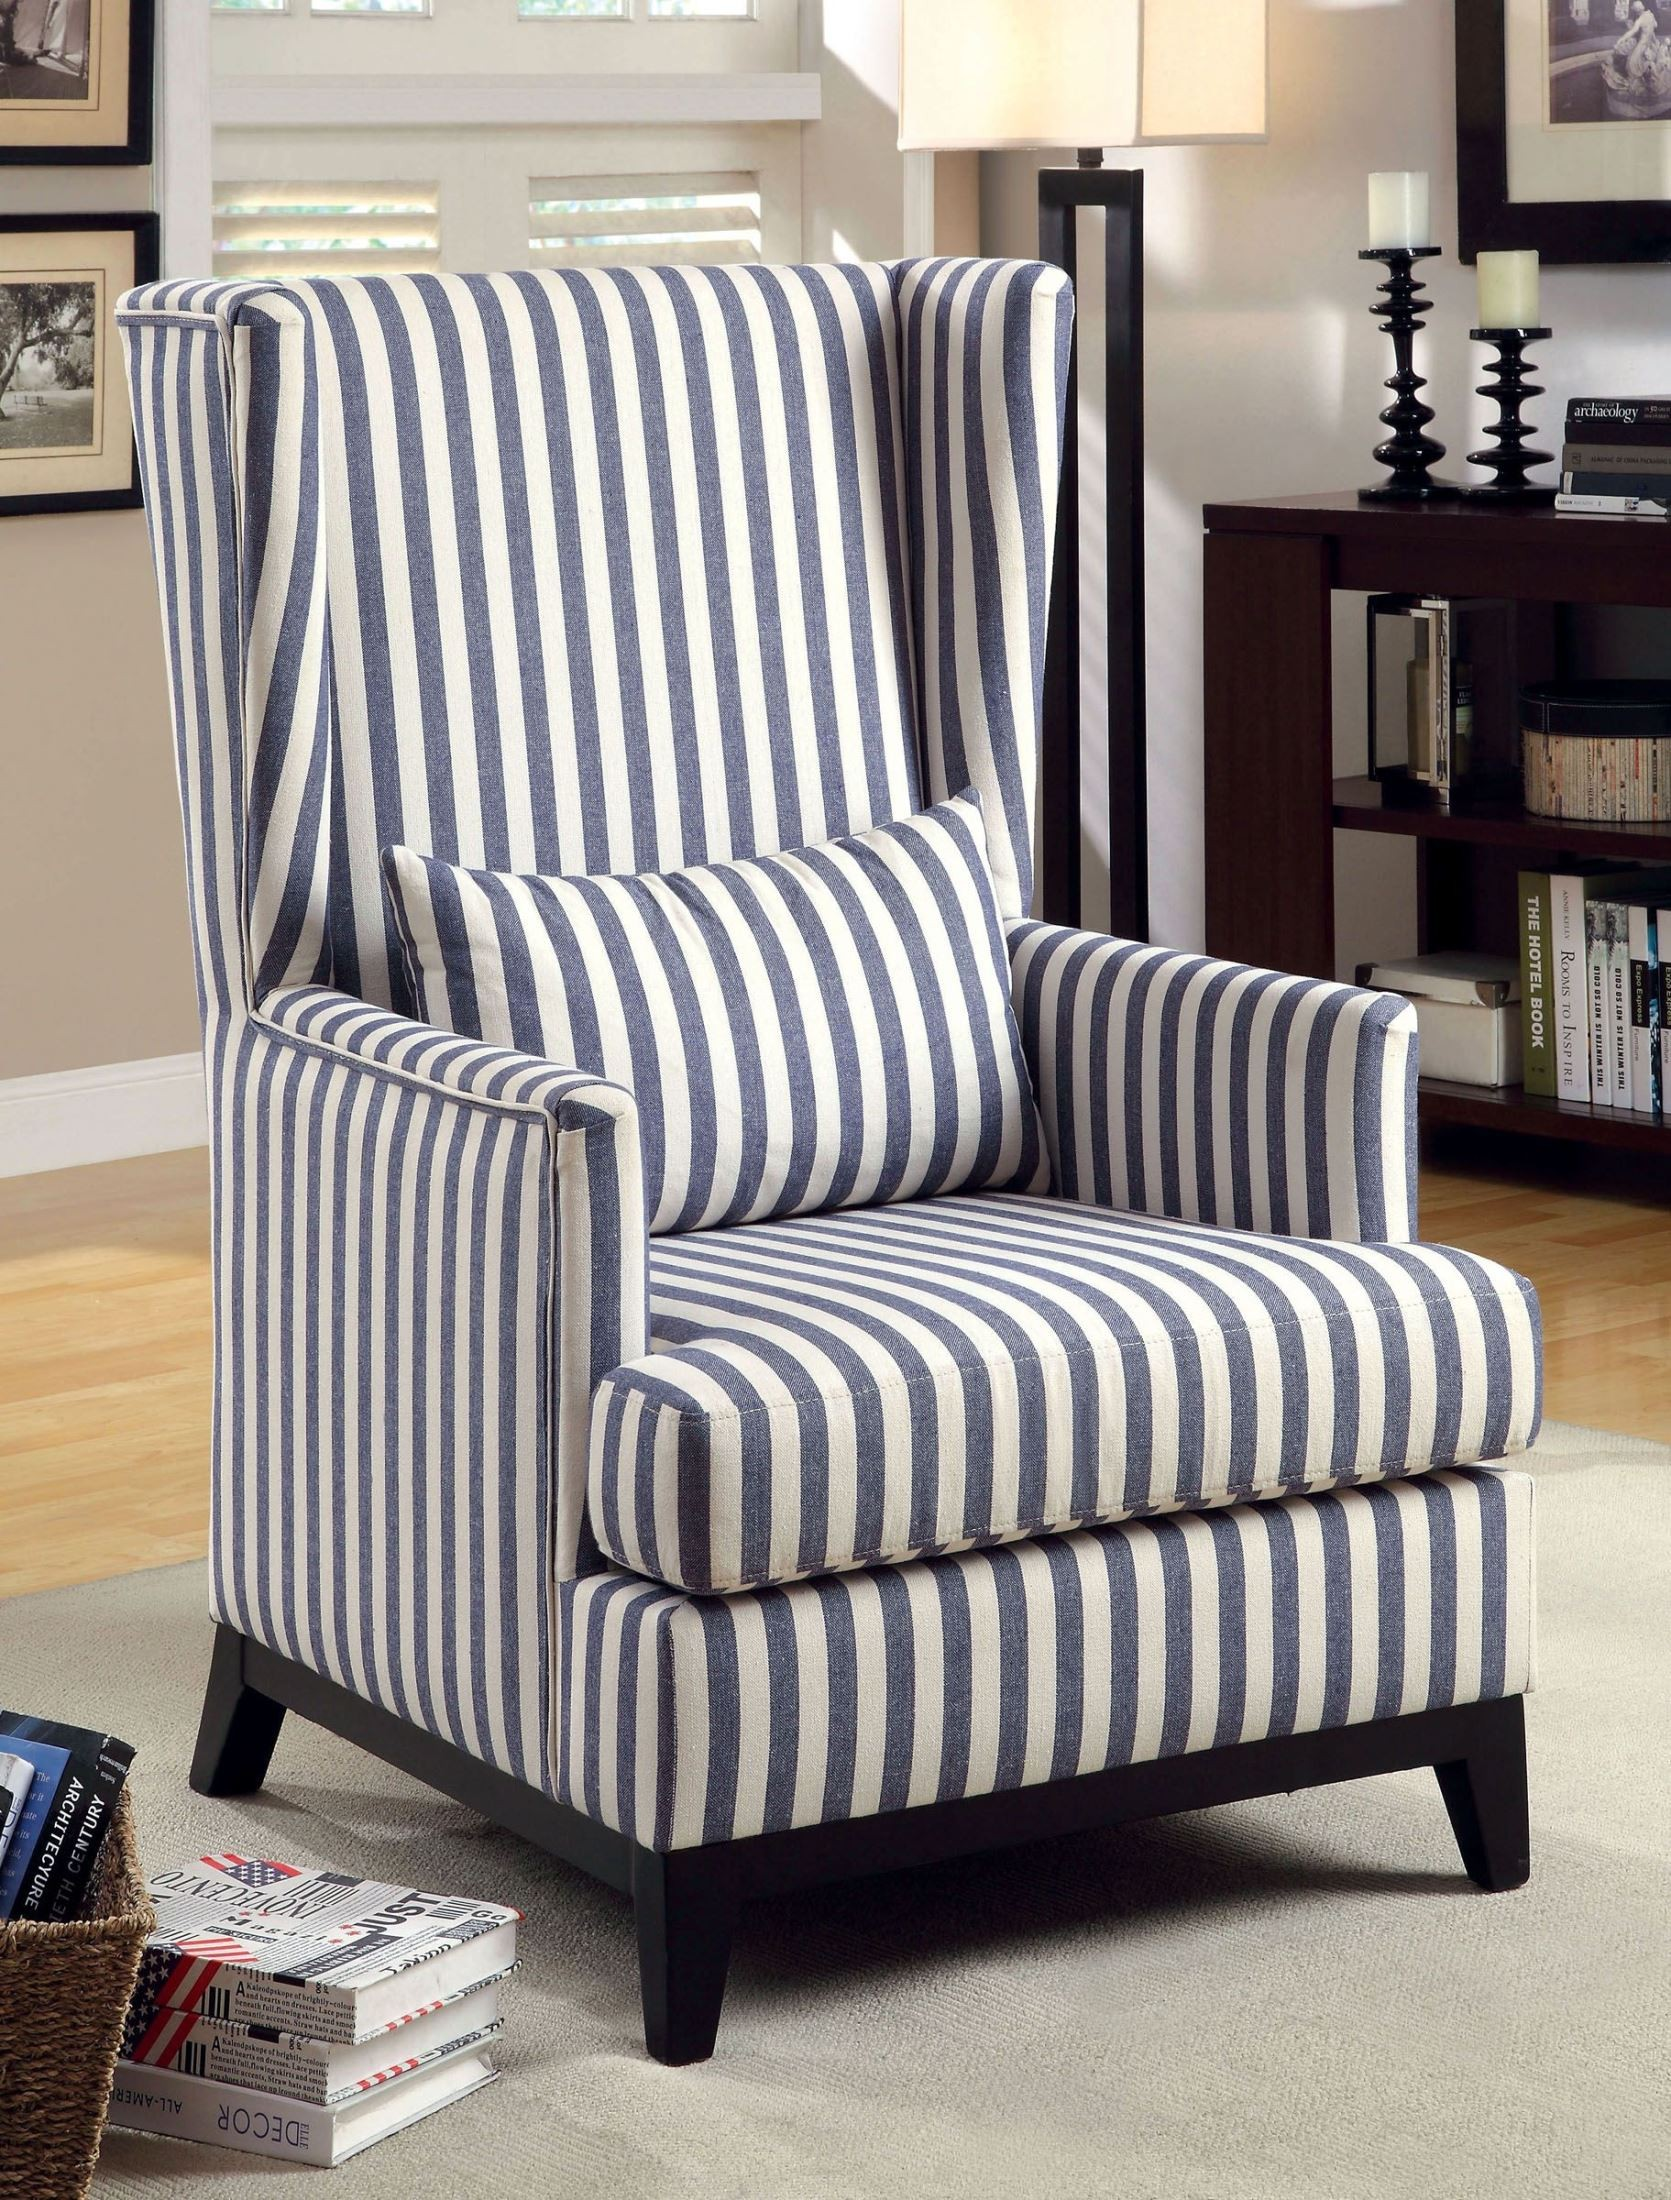 fabrics for chairs striped raynor ergo elite chair with headrest me22erglt stafa stripe flax fabric accent from furniture of